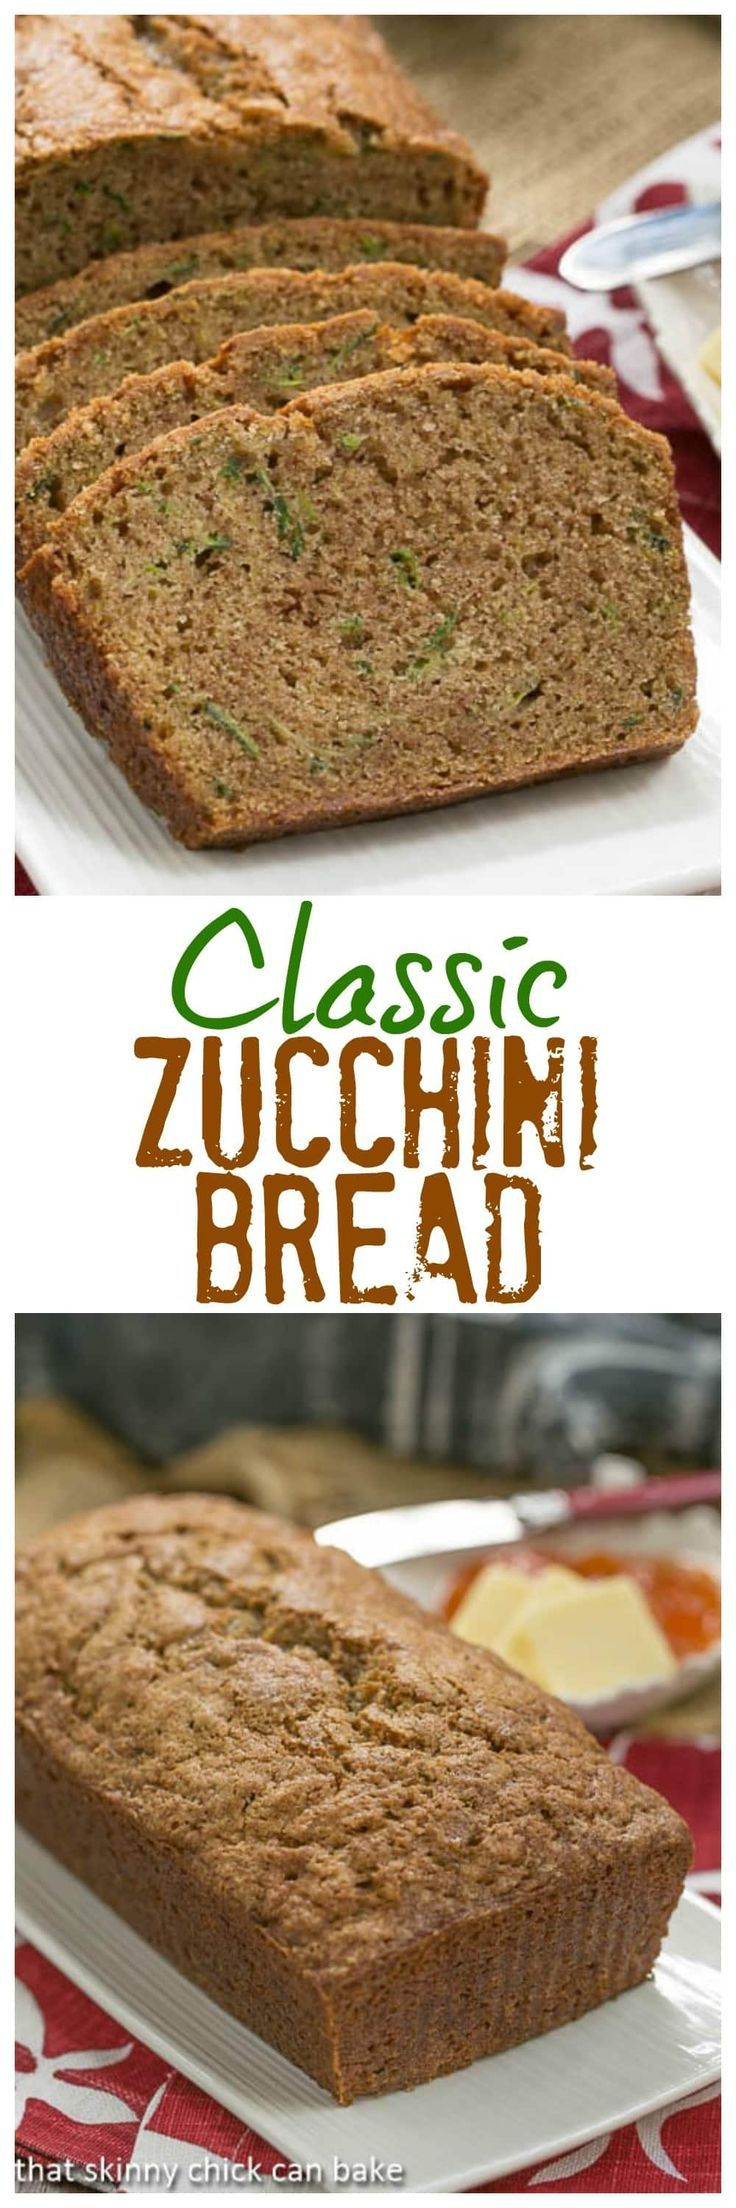 Zucchini Bread | Recipe and tips for this classic Cinnamon Spiced Zucchini Bread Recipe @lizzydo